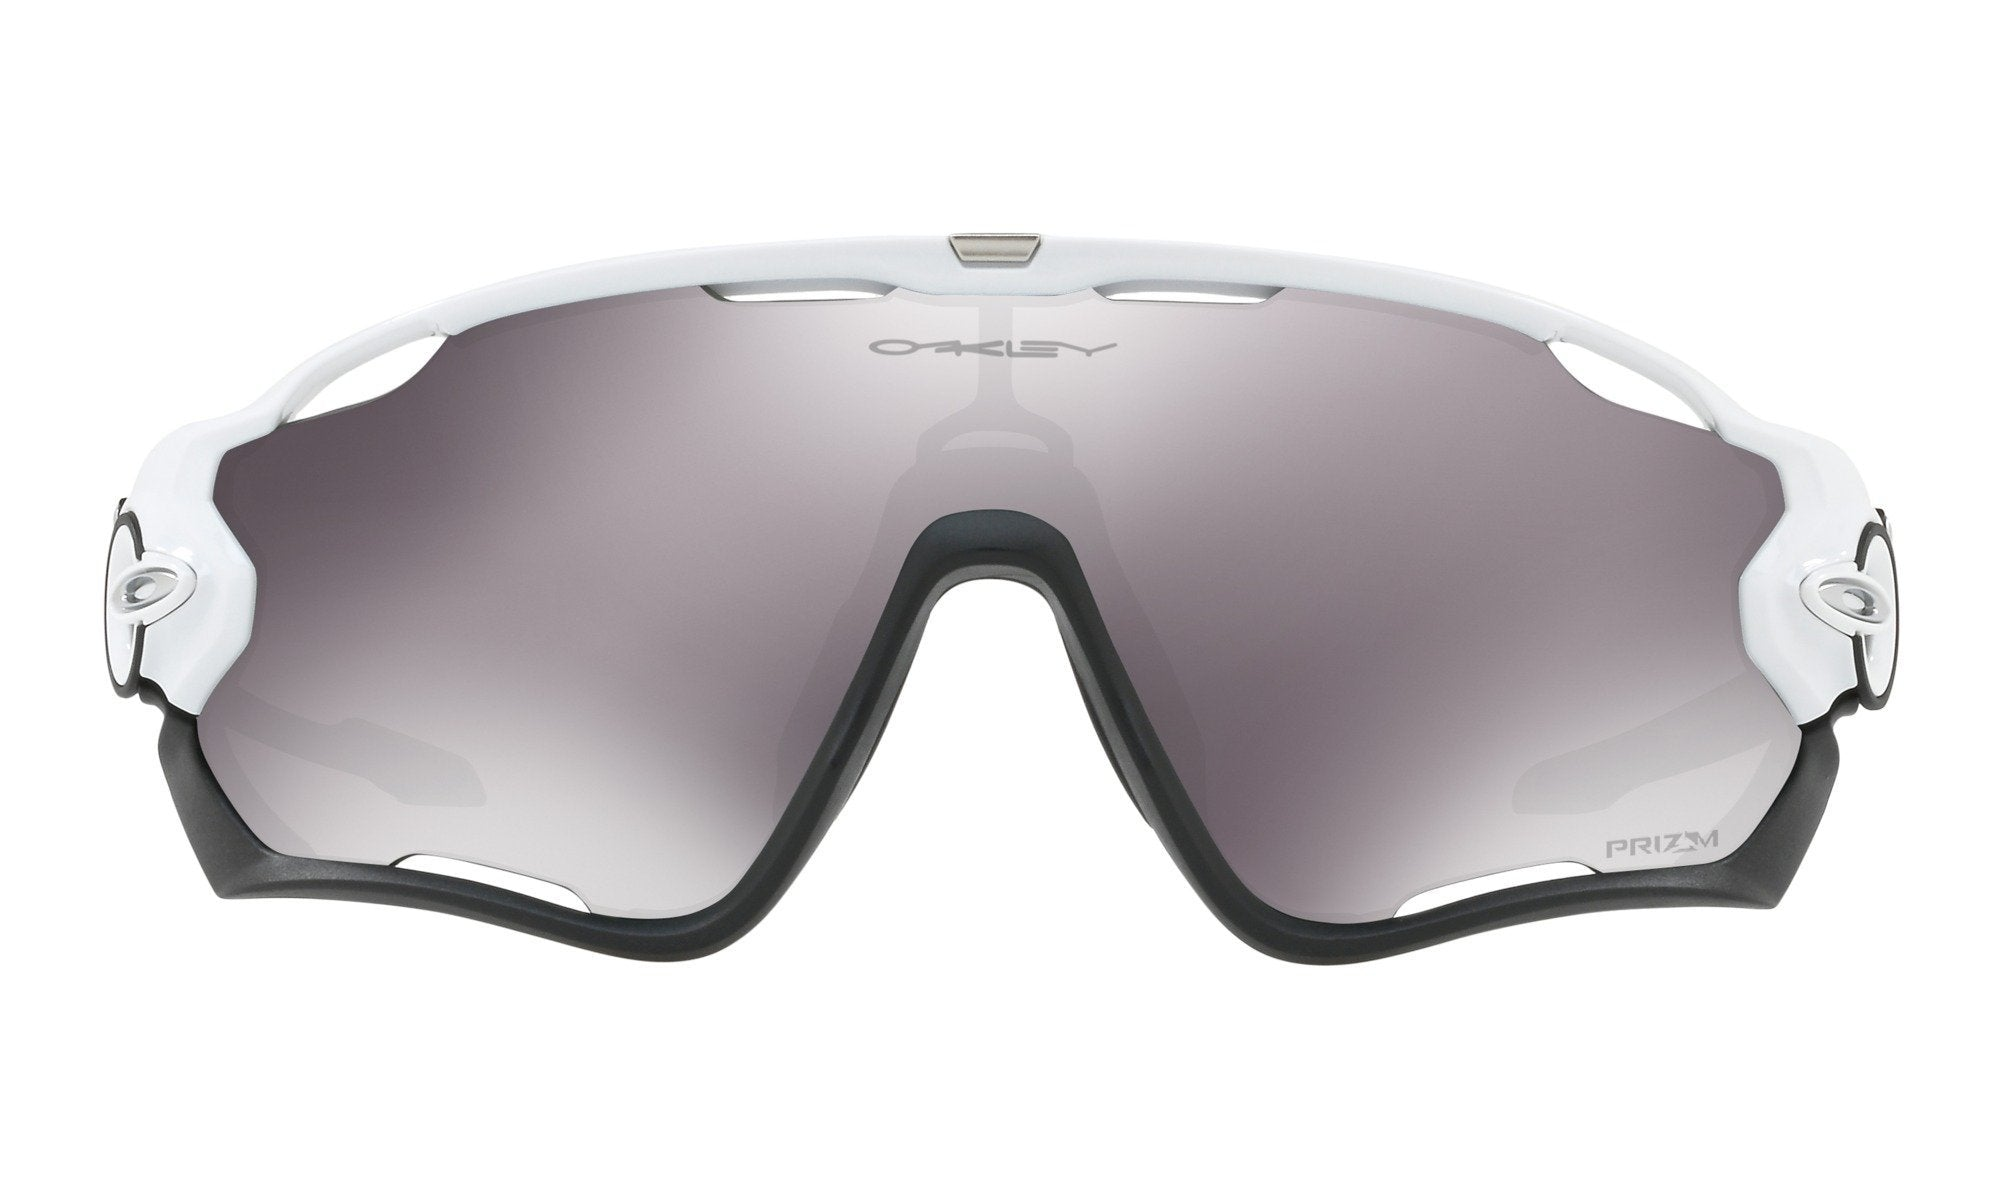 38035dfe4e Oakley Jawbreaker Glasses w  Prizm Lens - Cycles Galleria